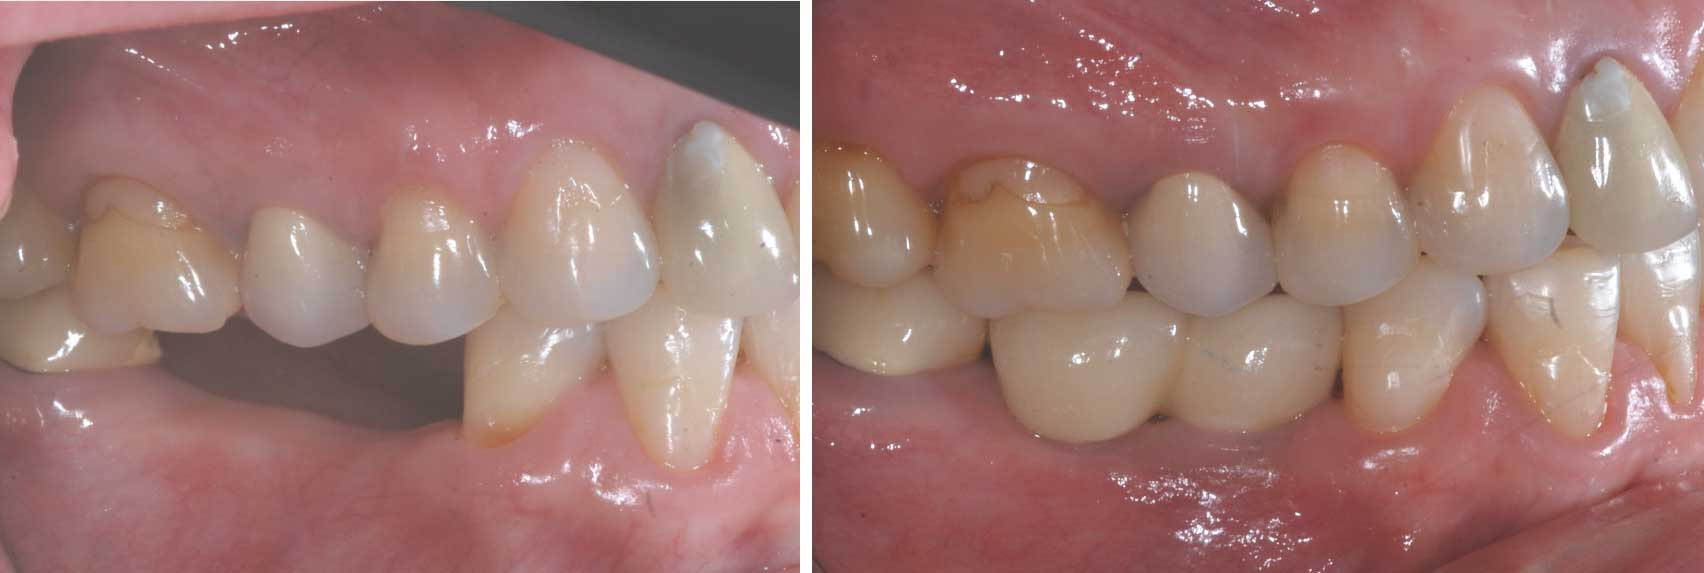 Chatfield dental tooth implant image 2